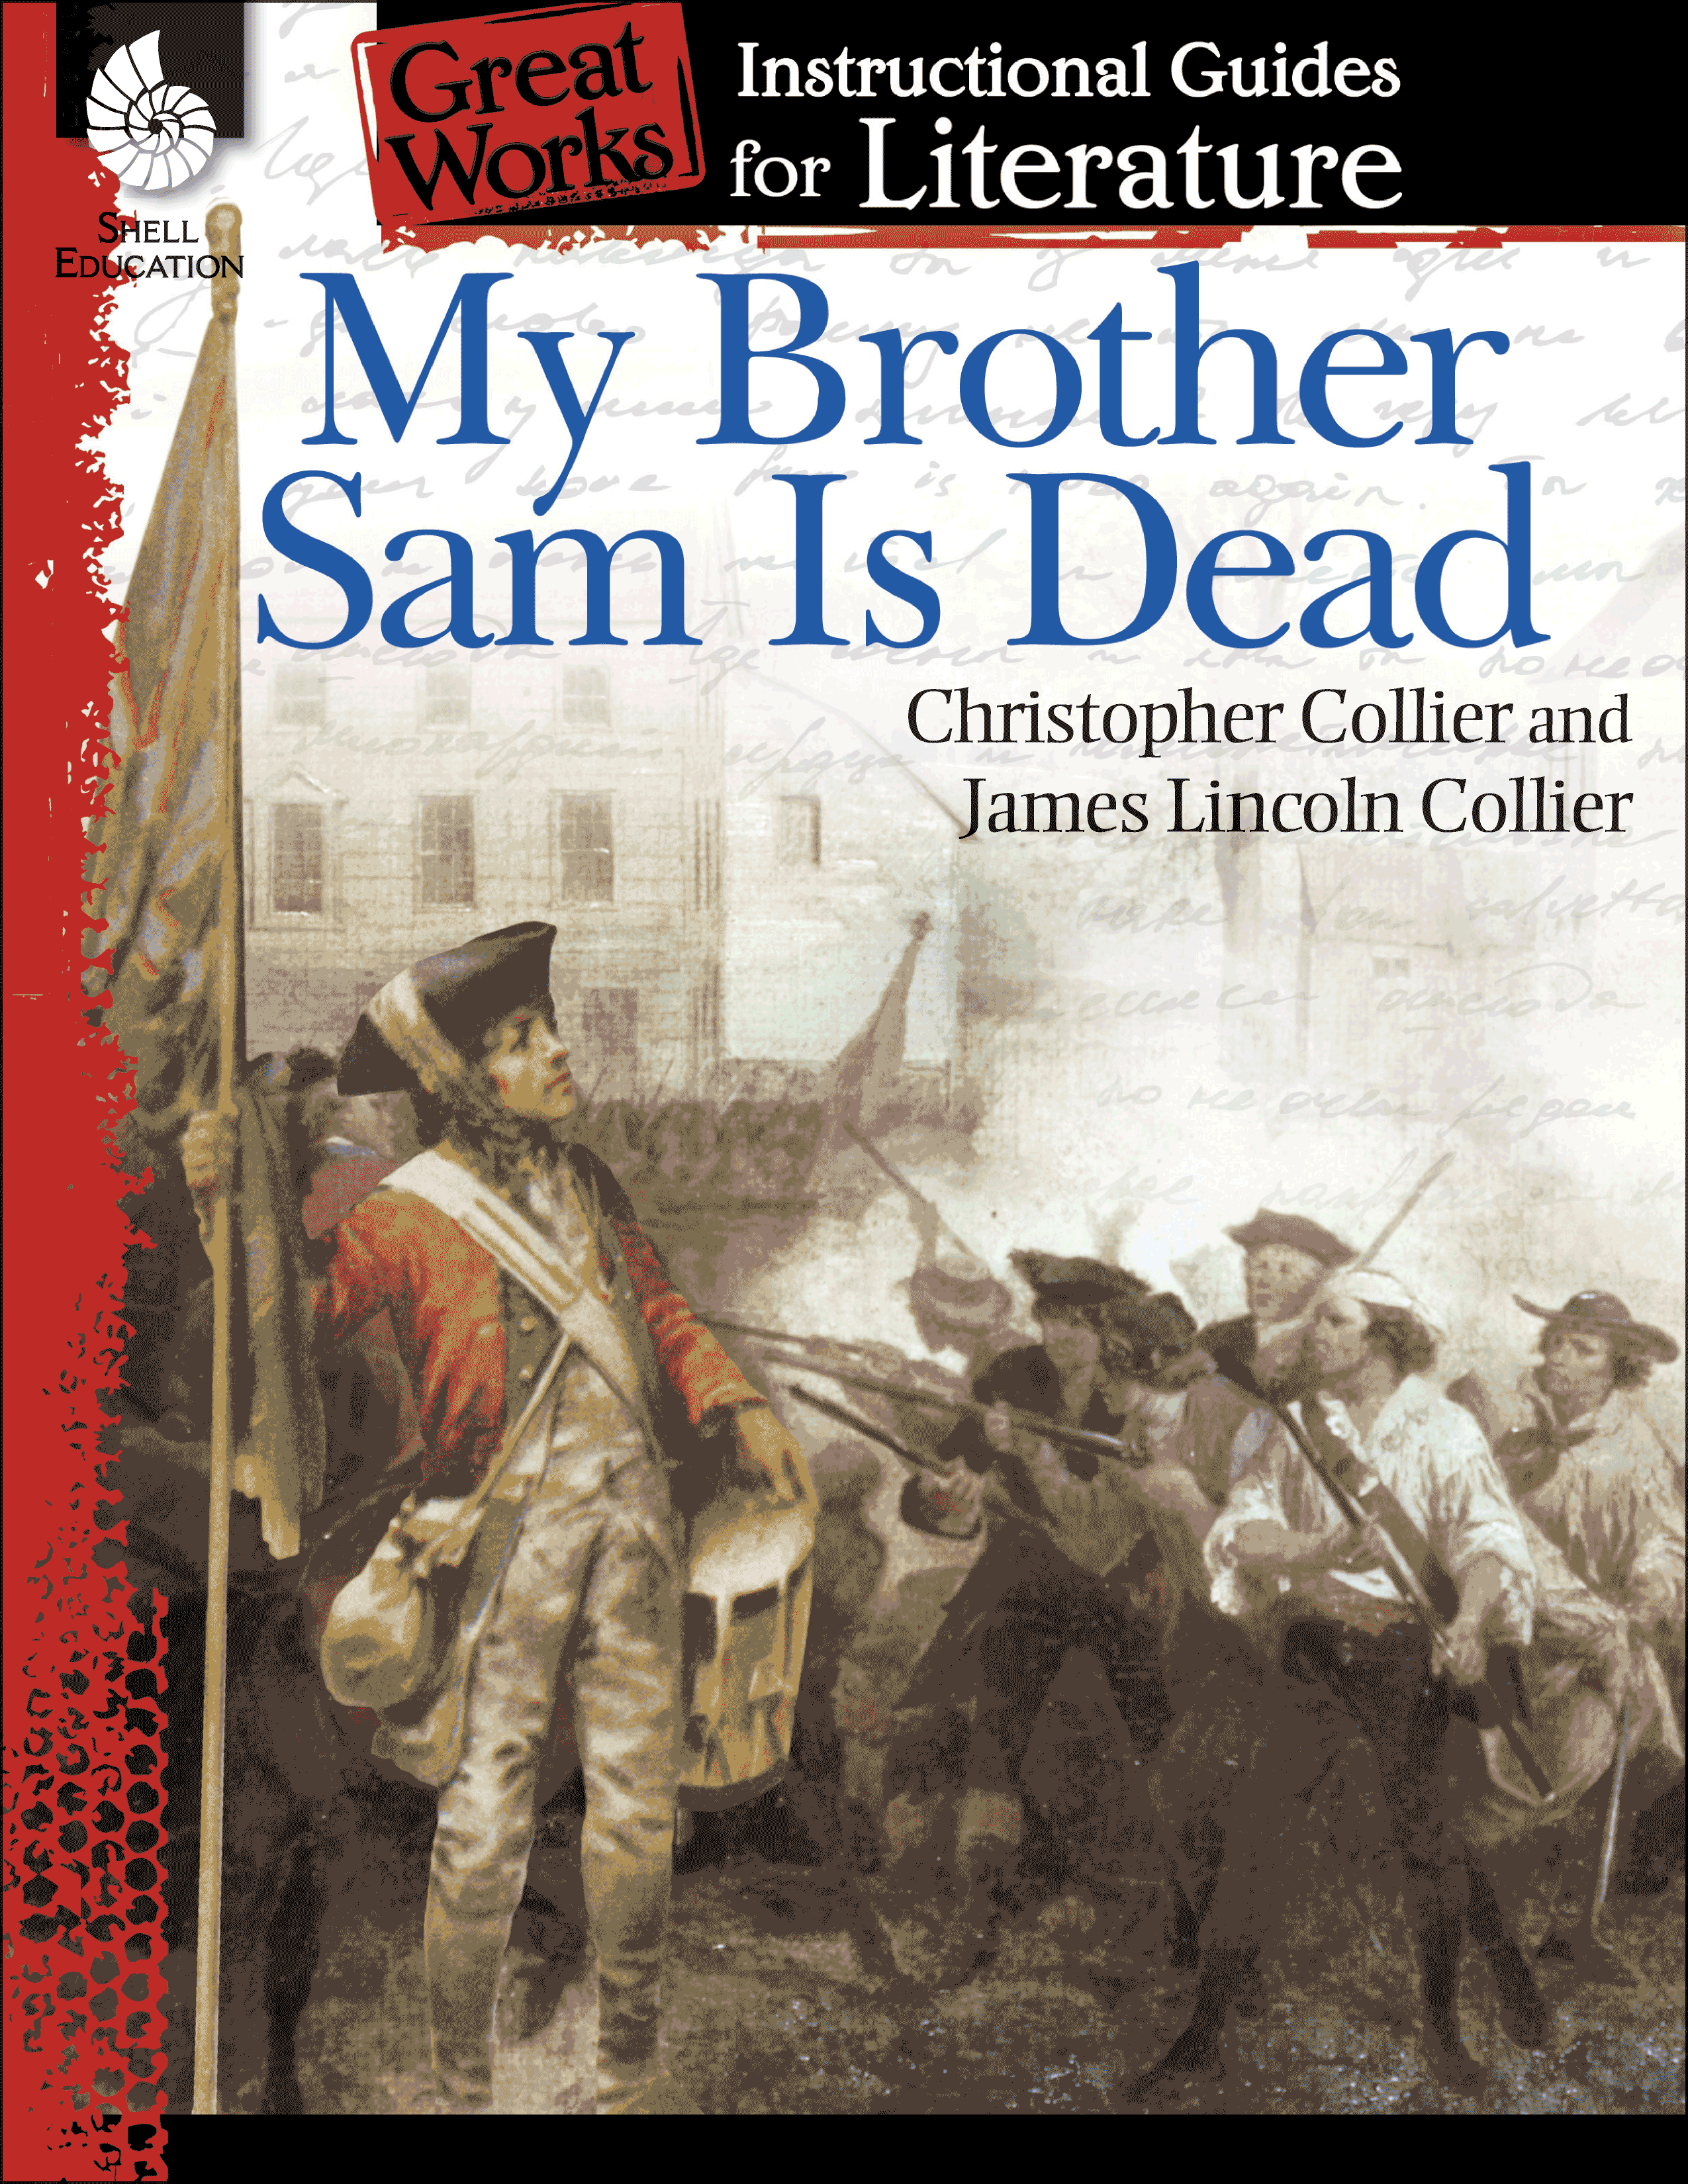 an analysis of the novel my brother sam is dead